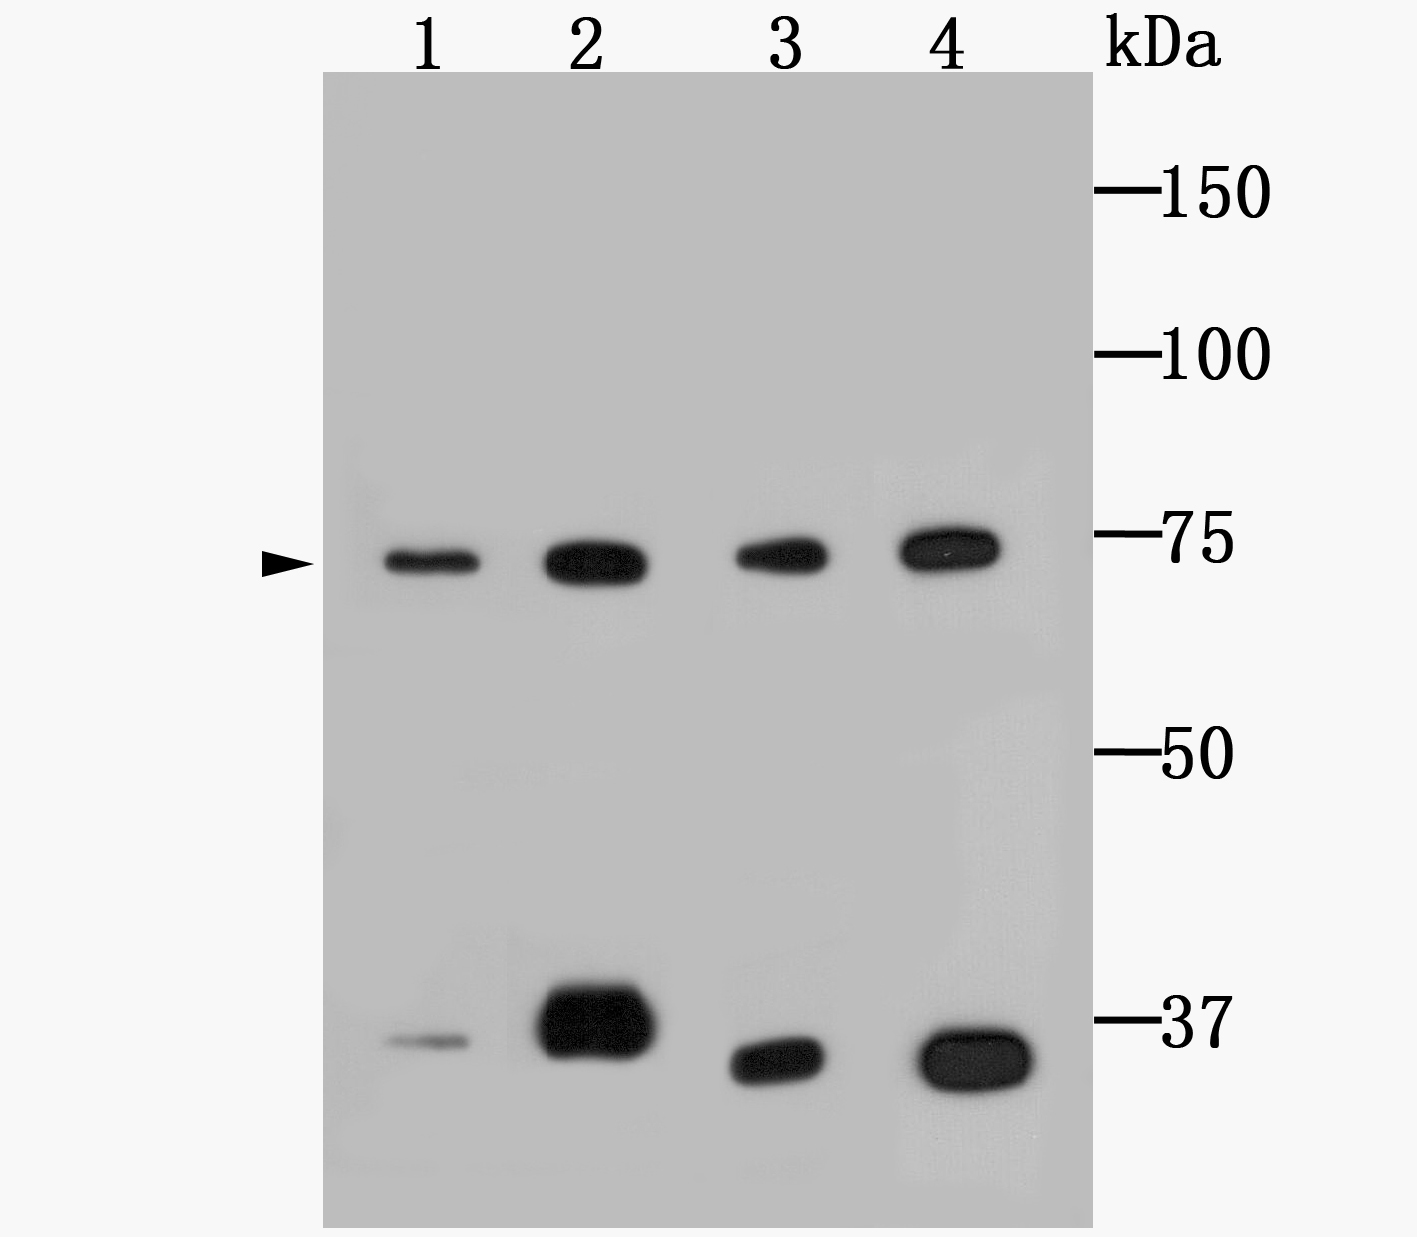 Western blot analysis of Grp75 on different cell lysates using anti-Grp75 antibody at 1/1,000 dilution.<br />   Positive control:<br />   Lane 1: NIH-3T3<br />   Lane 2: HepG2<br />   Lane 3: K562 <br />   Lane 4: L929